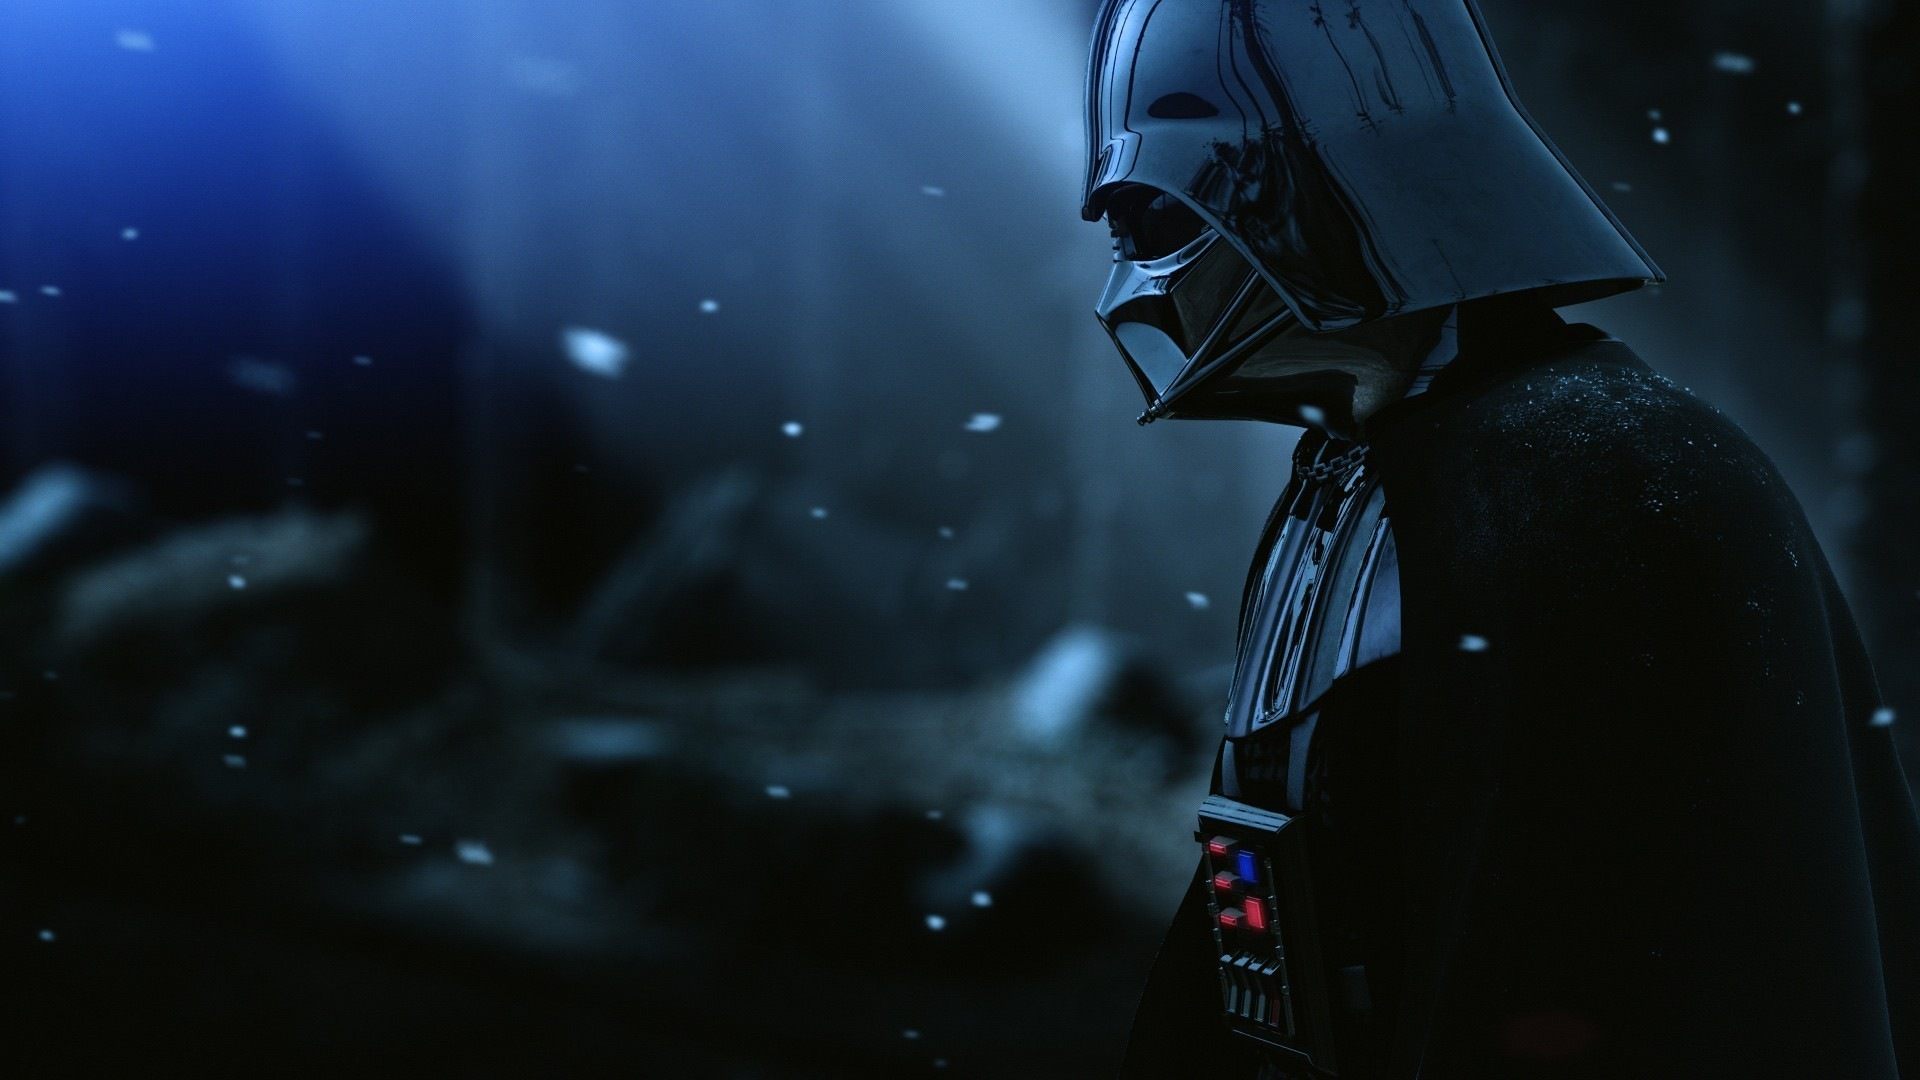 Darth Vader Star Wars Snow Game Background hd wallpaper by chococruise